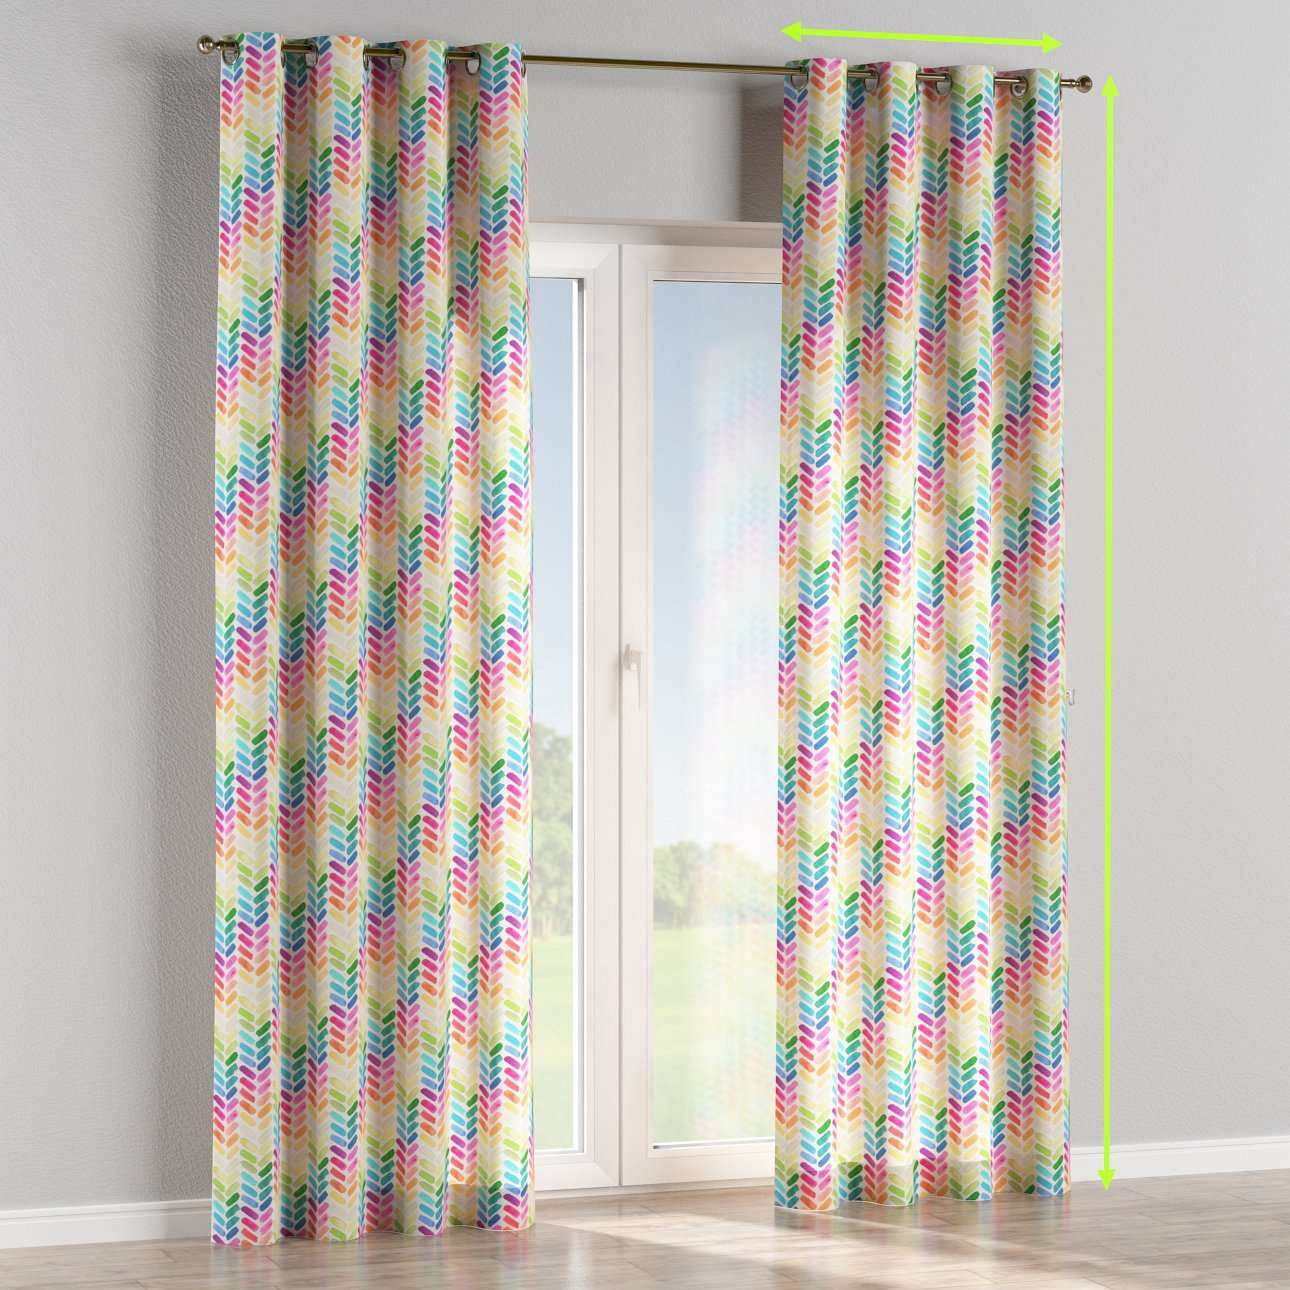 Eyelet lined curtains in collection New Art, fabric: 140-25